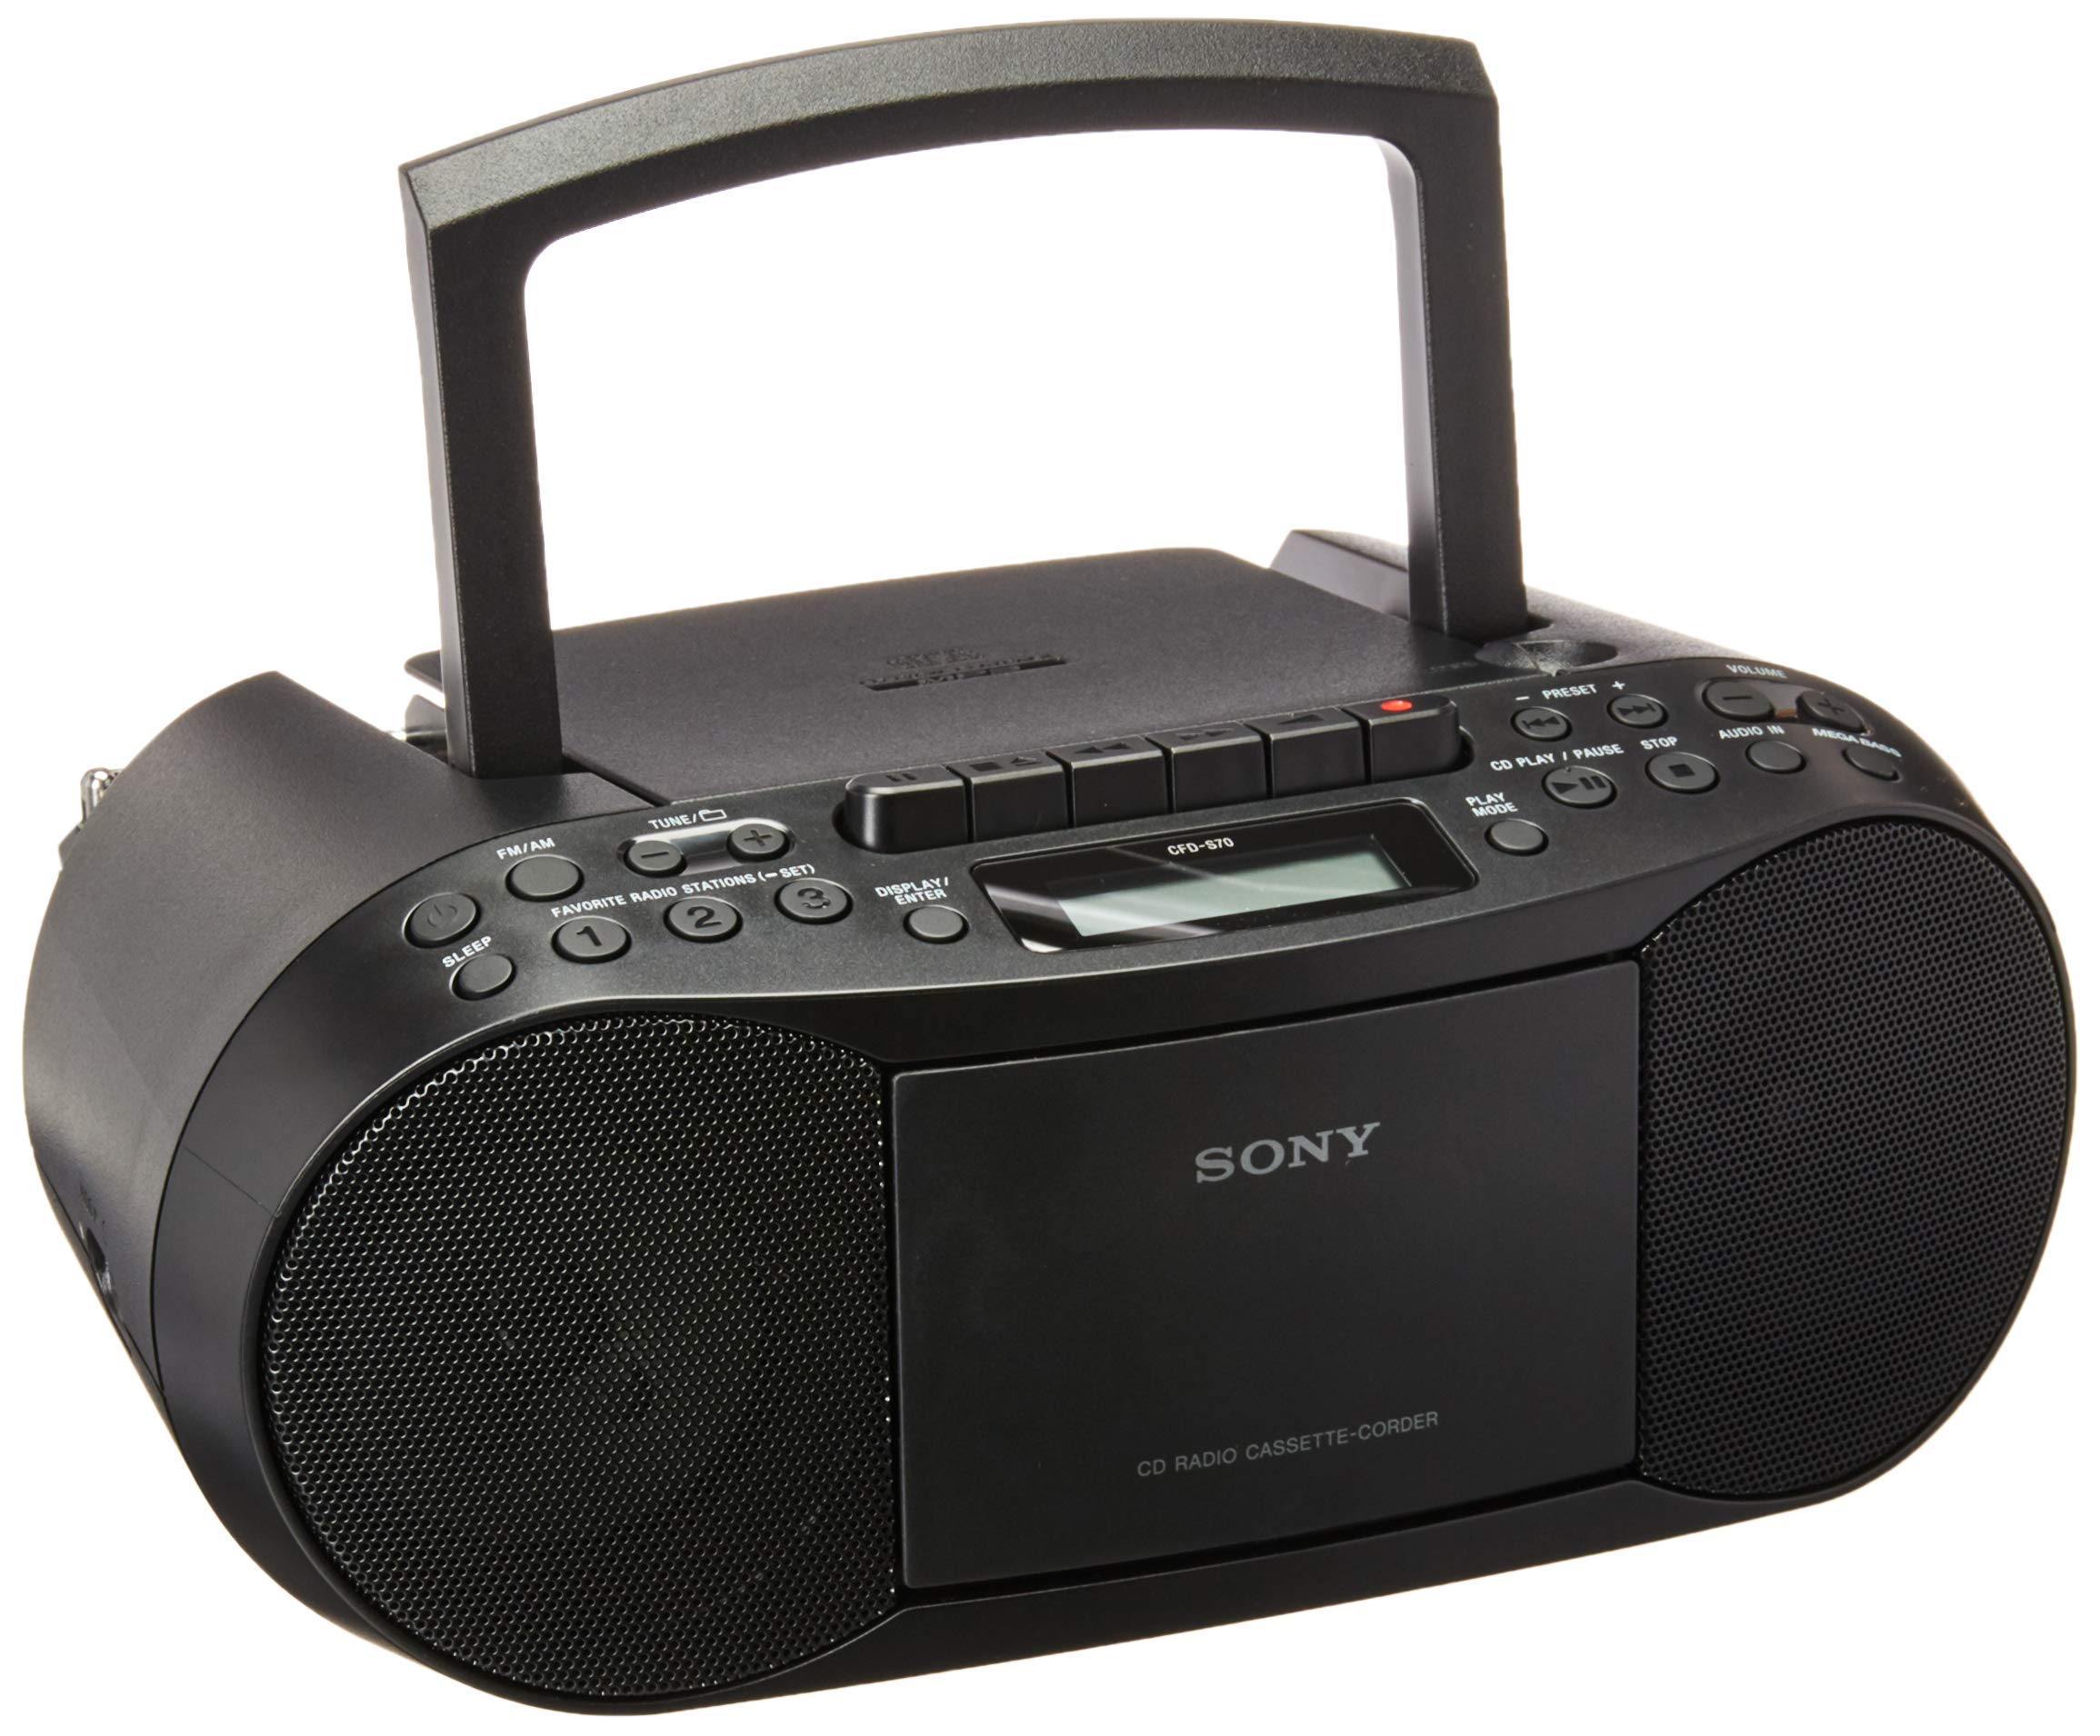 Sony CFDS70-BLK CD/MP3 Cassette Boombox Home Audio Radio, Black, with Aux Cable (Renewed) by Sony (Image #1)